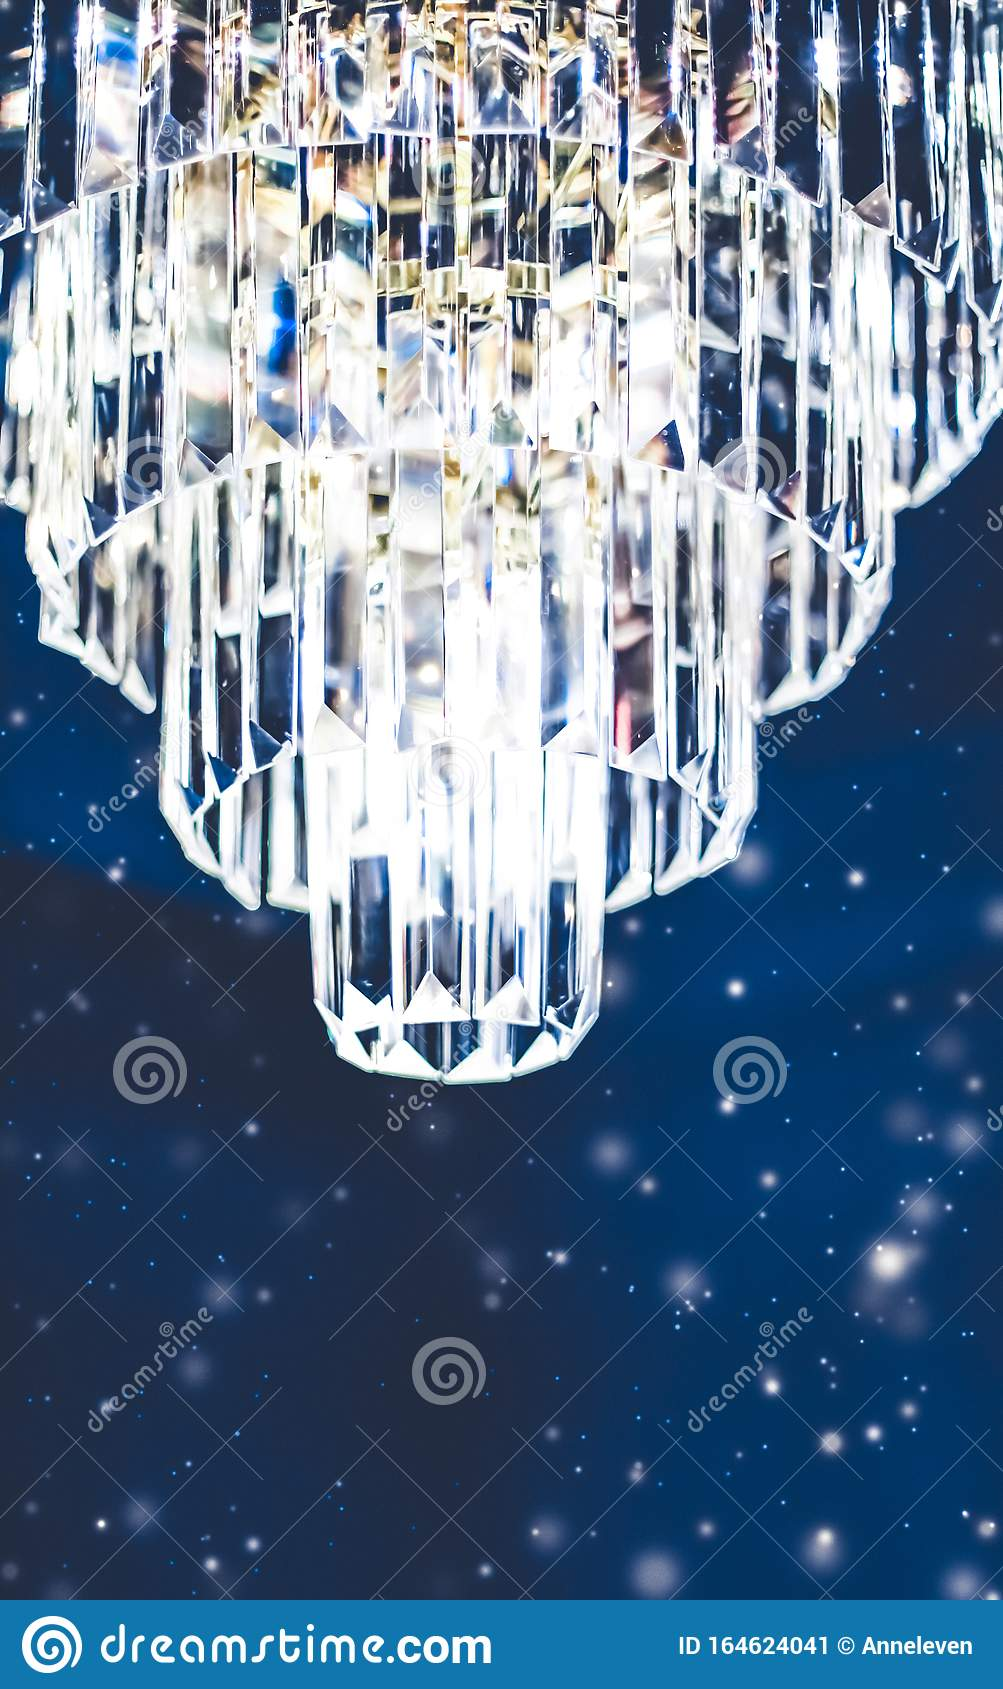 How To Get A Luxury Living Room Pt 1 Golden Lighting: Luxury Chandelier With Crystal Glass, Interior Design And Home Decor Lighting Detail Stock Image